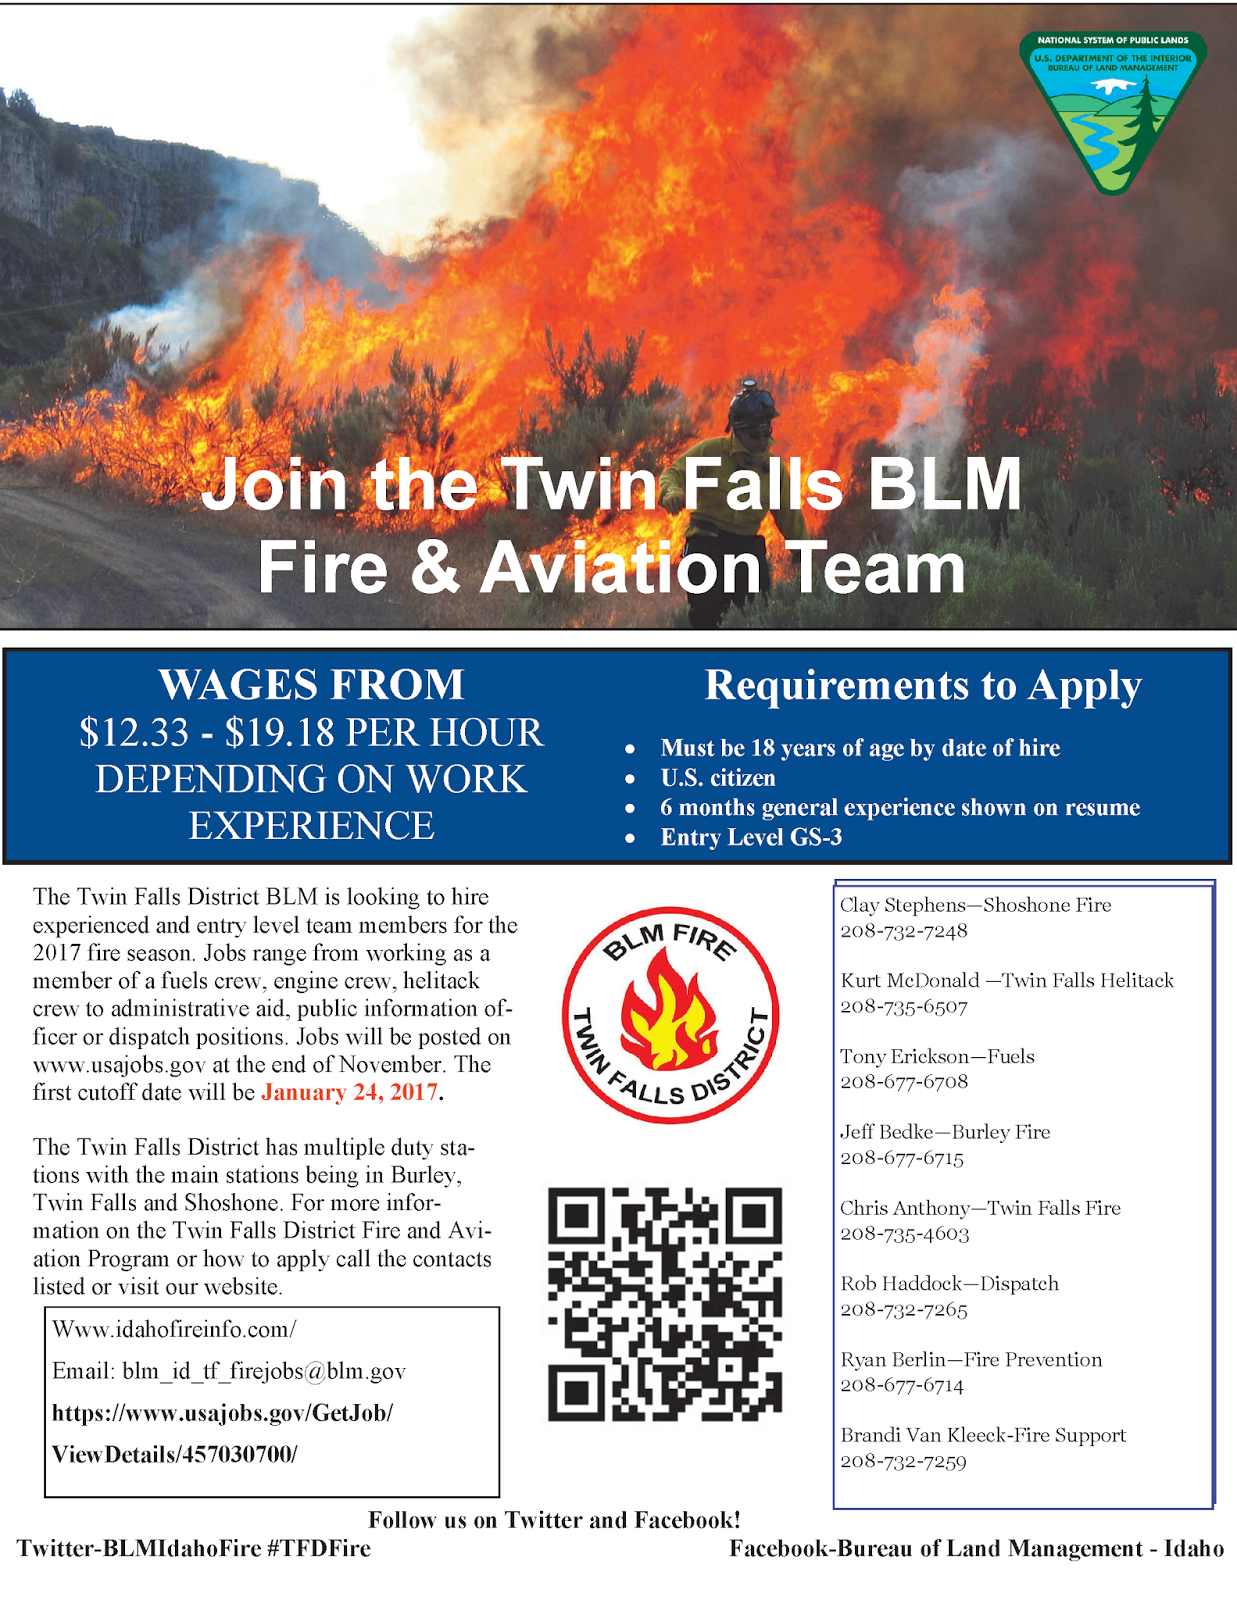 Idaho Fire Information: Join the Twin Falls BLM Fire and Aviation Team!